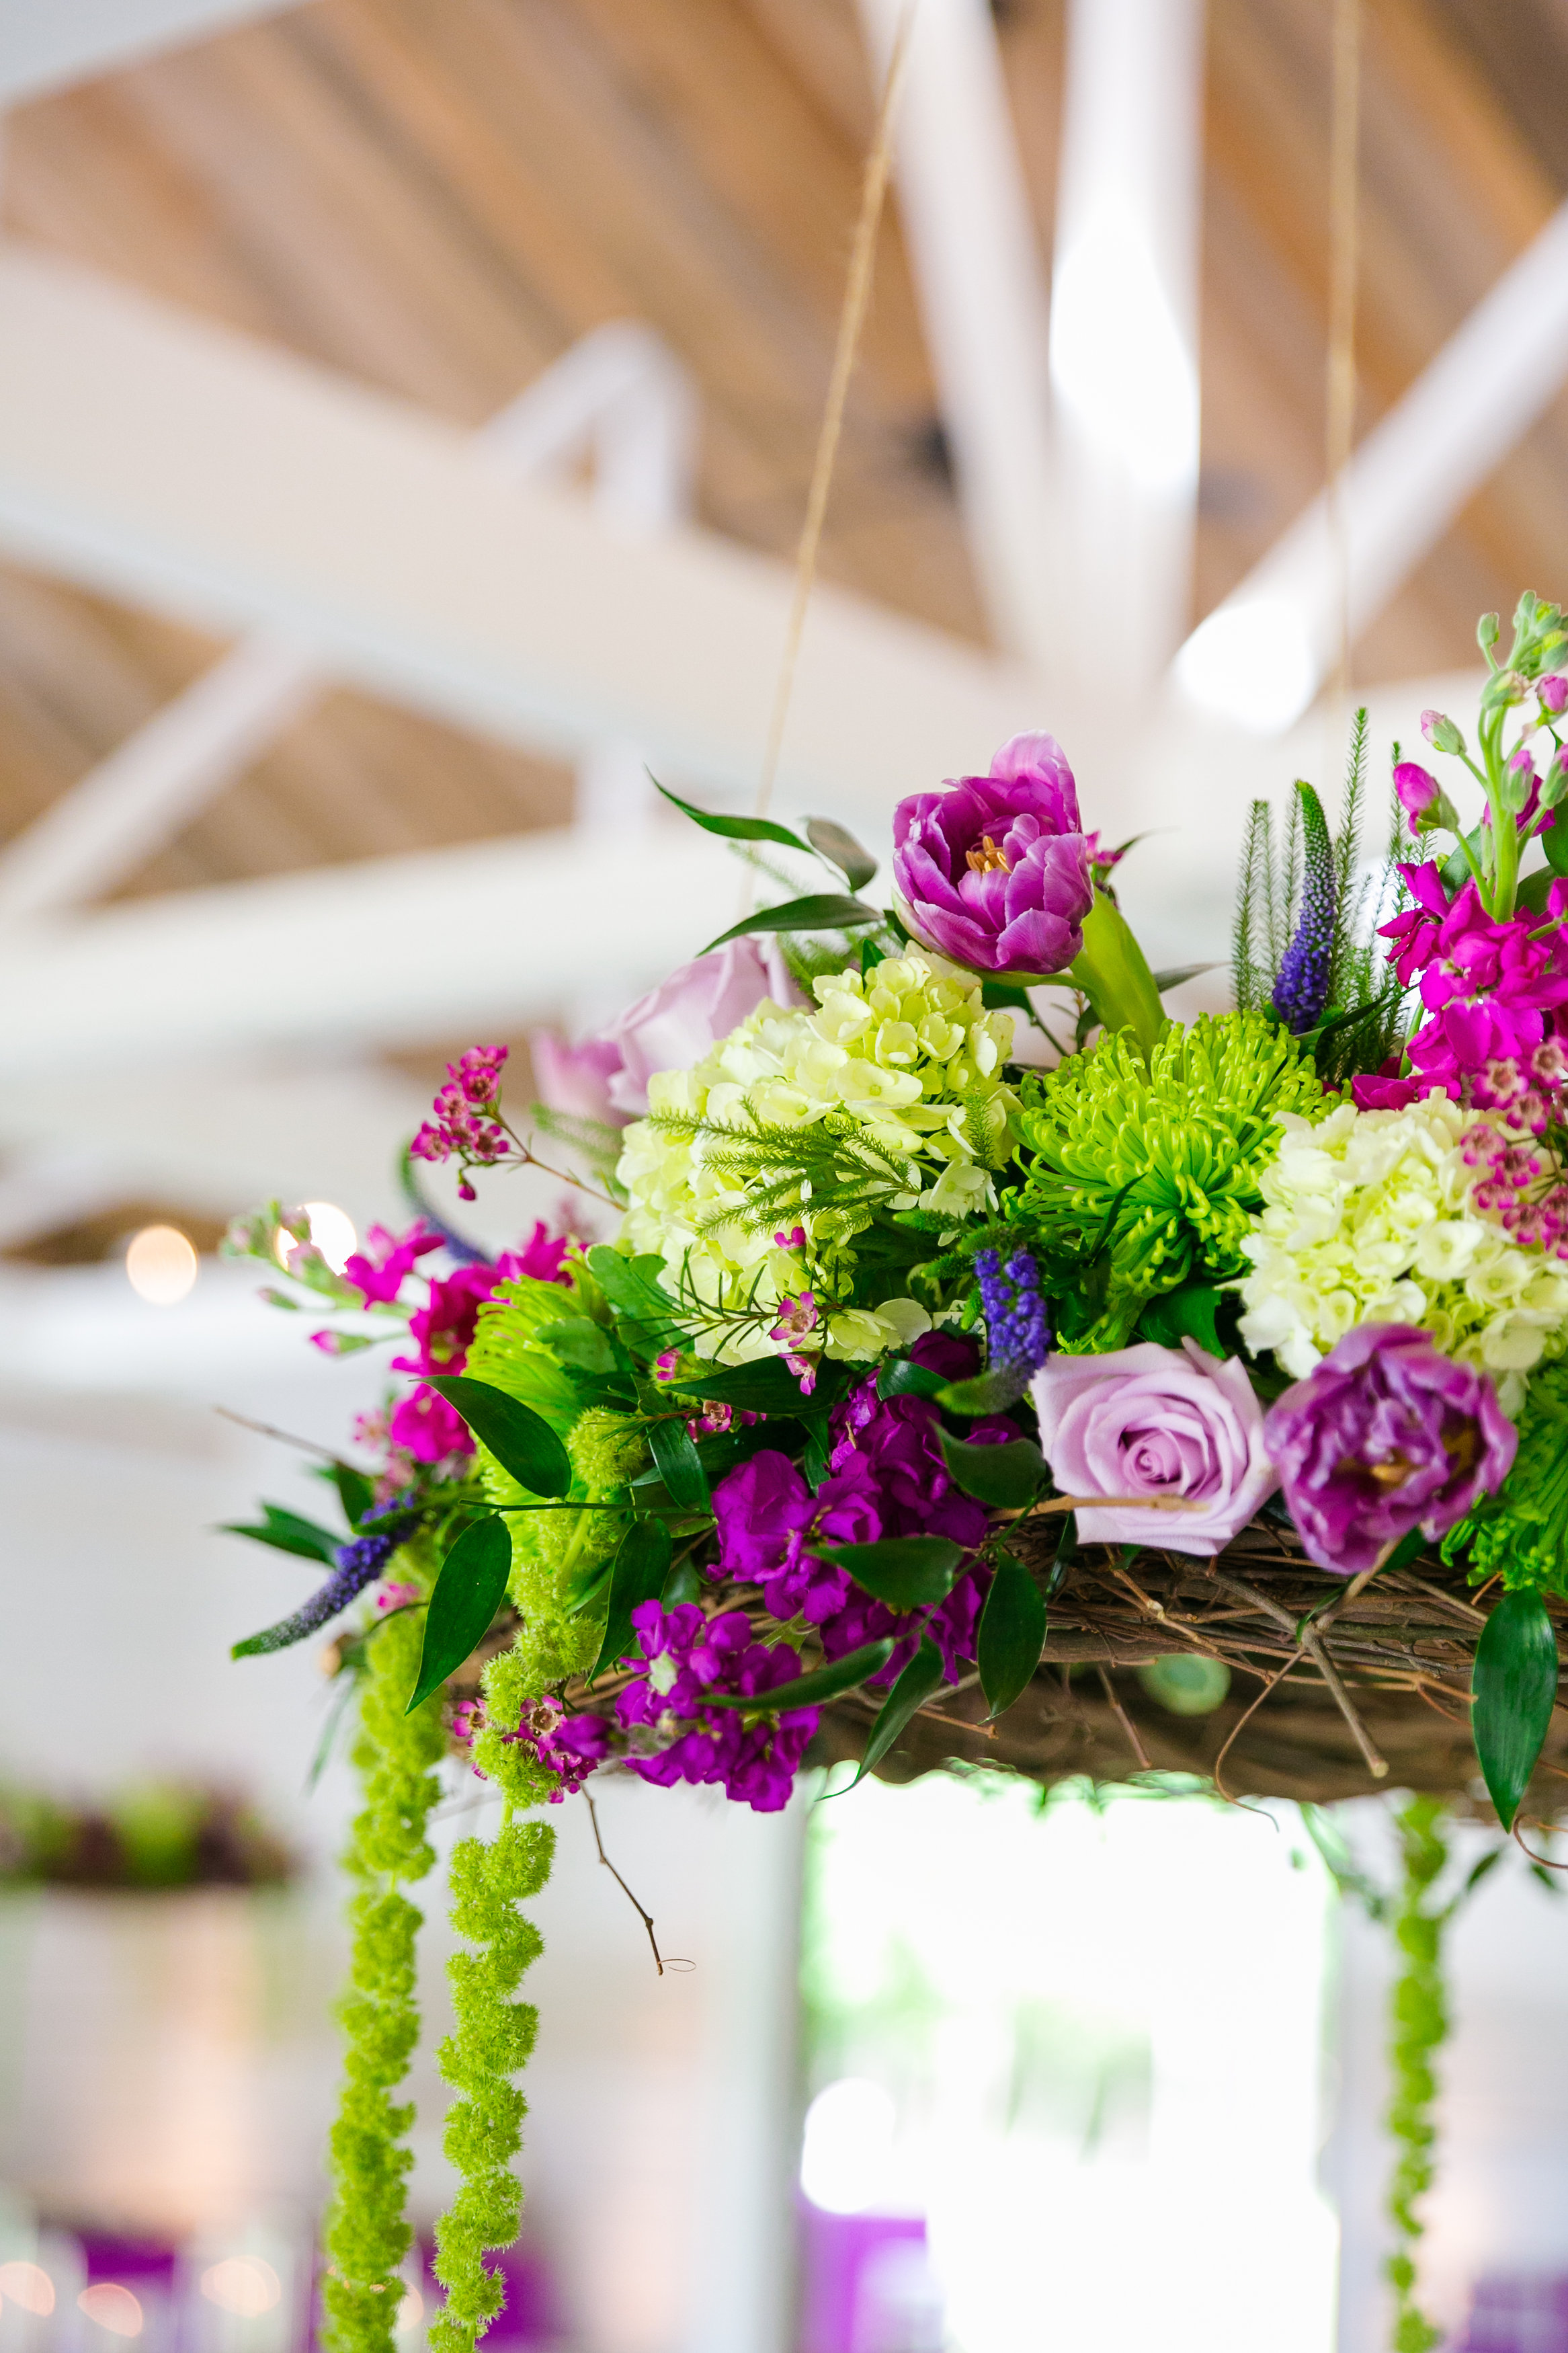 sweetgrass-social-hanging-floral-chandelier-fuchsia-and-green-wedding-flowers-barn-wedding-wildberry-farm